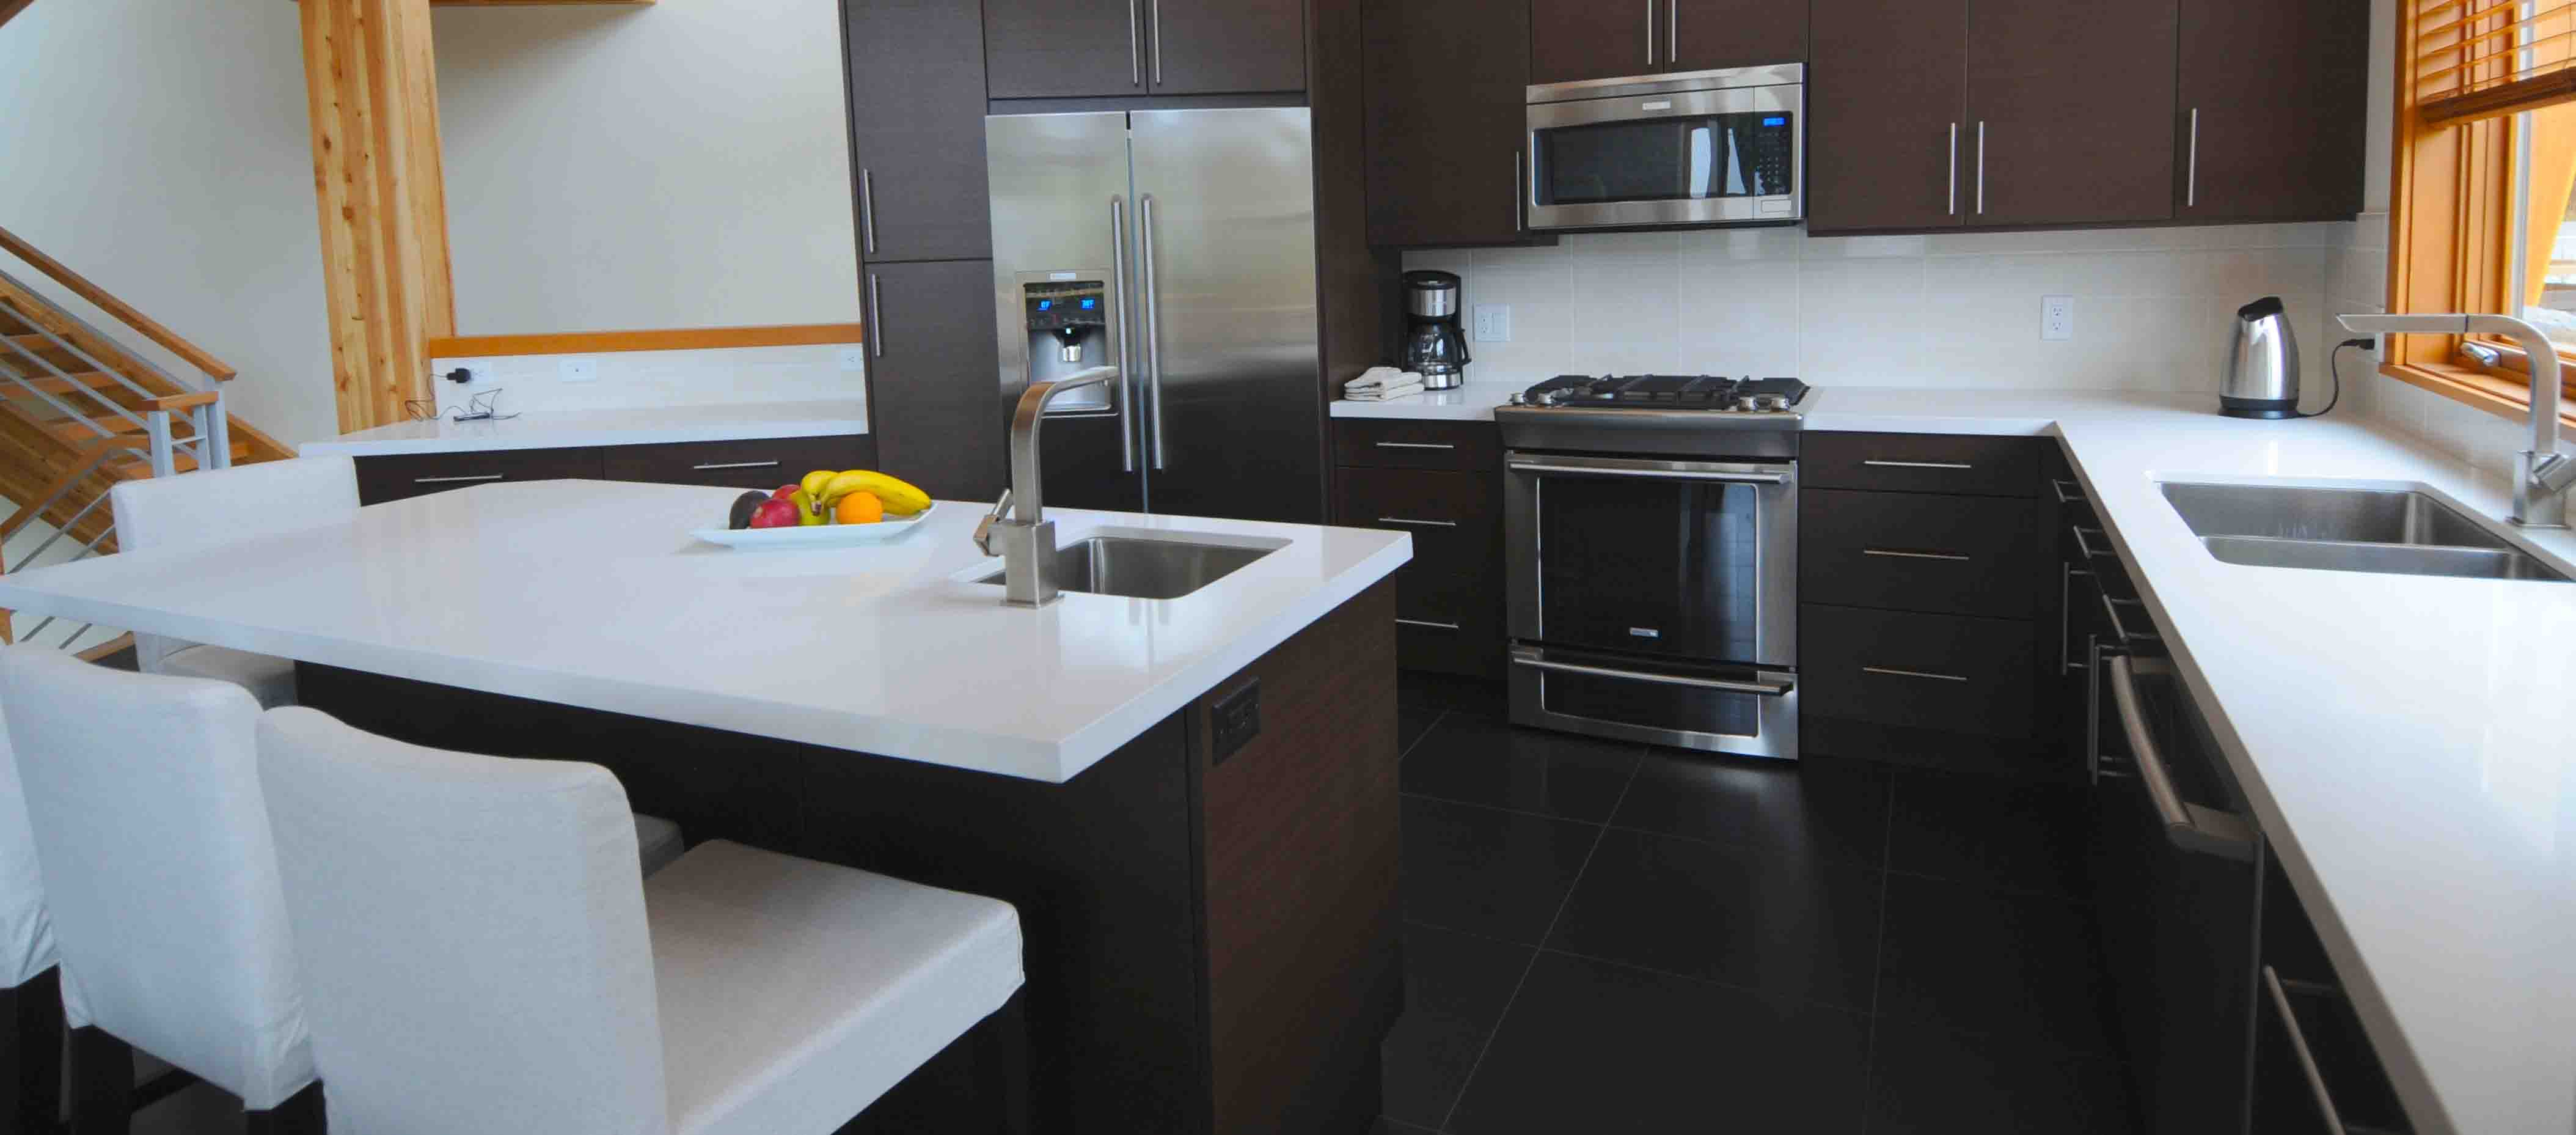 What Is The Best Quartz Countertop 15 Stunning Quartz Countertop Colors To Gather Inspiration